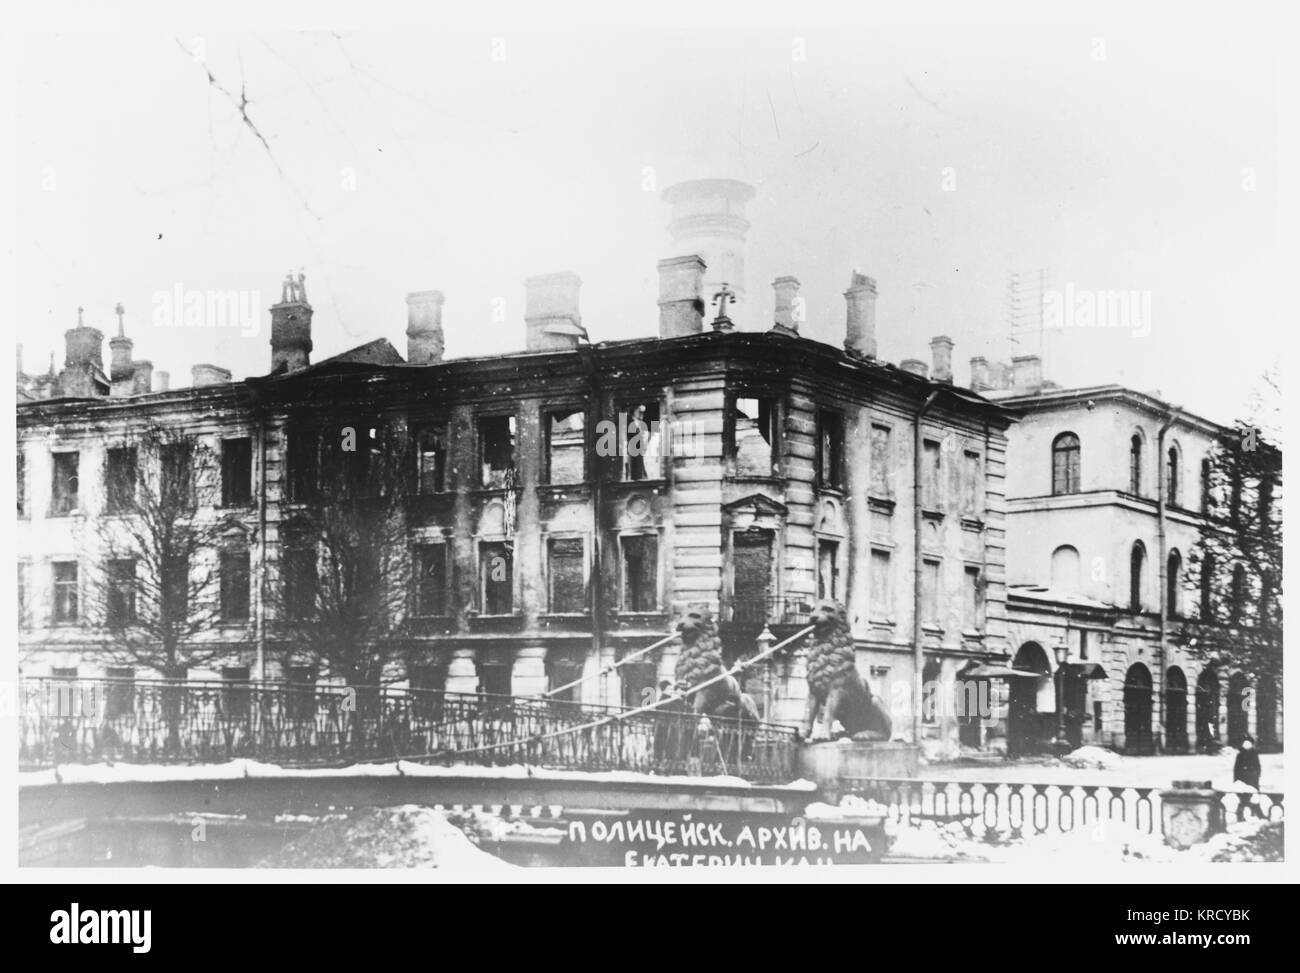 The Police Archive at  Petrograd is stormed by  insurgents who destroy the  records and fire the building.      - Stock Image